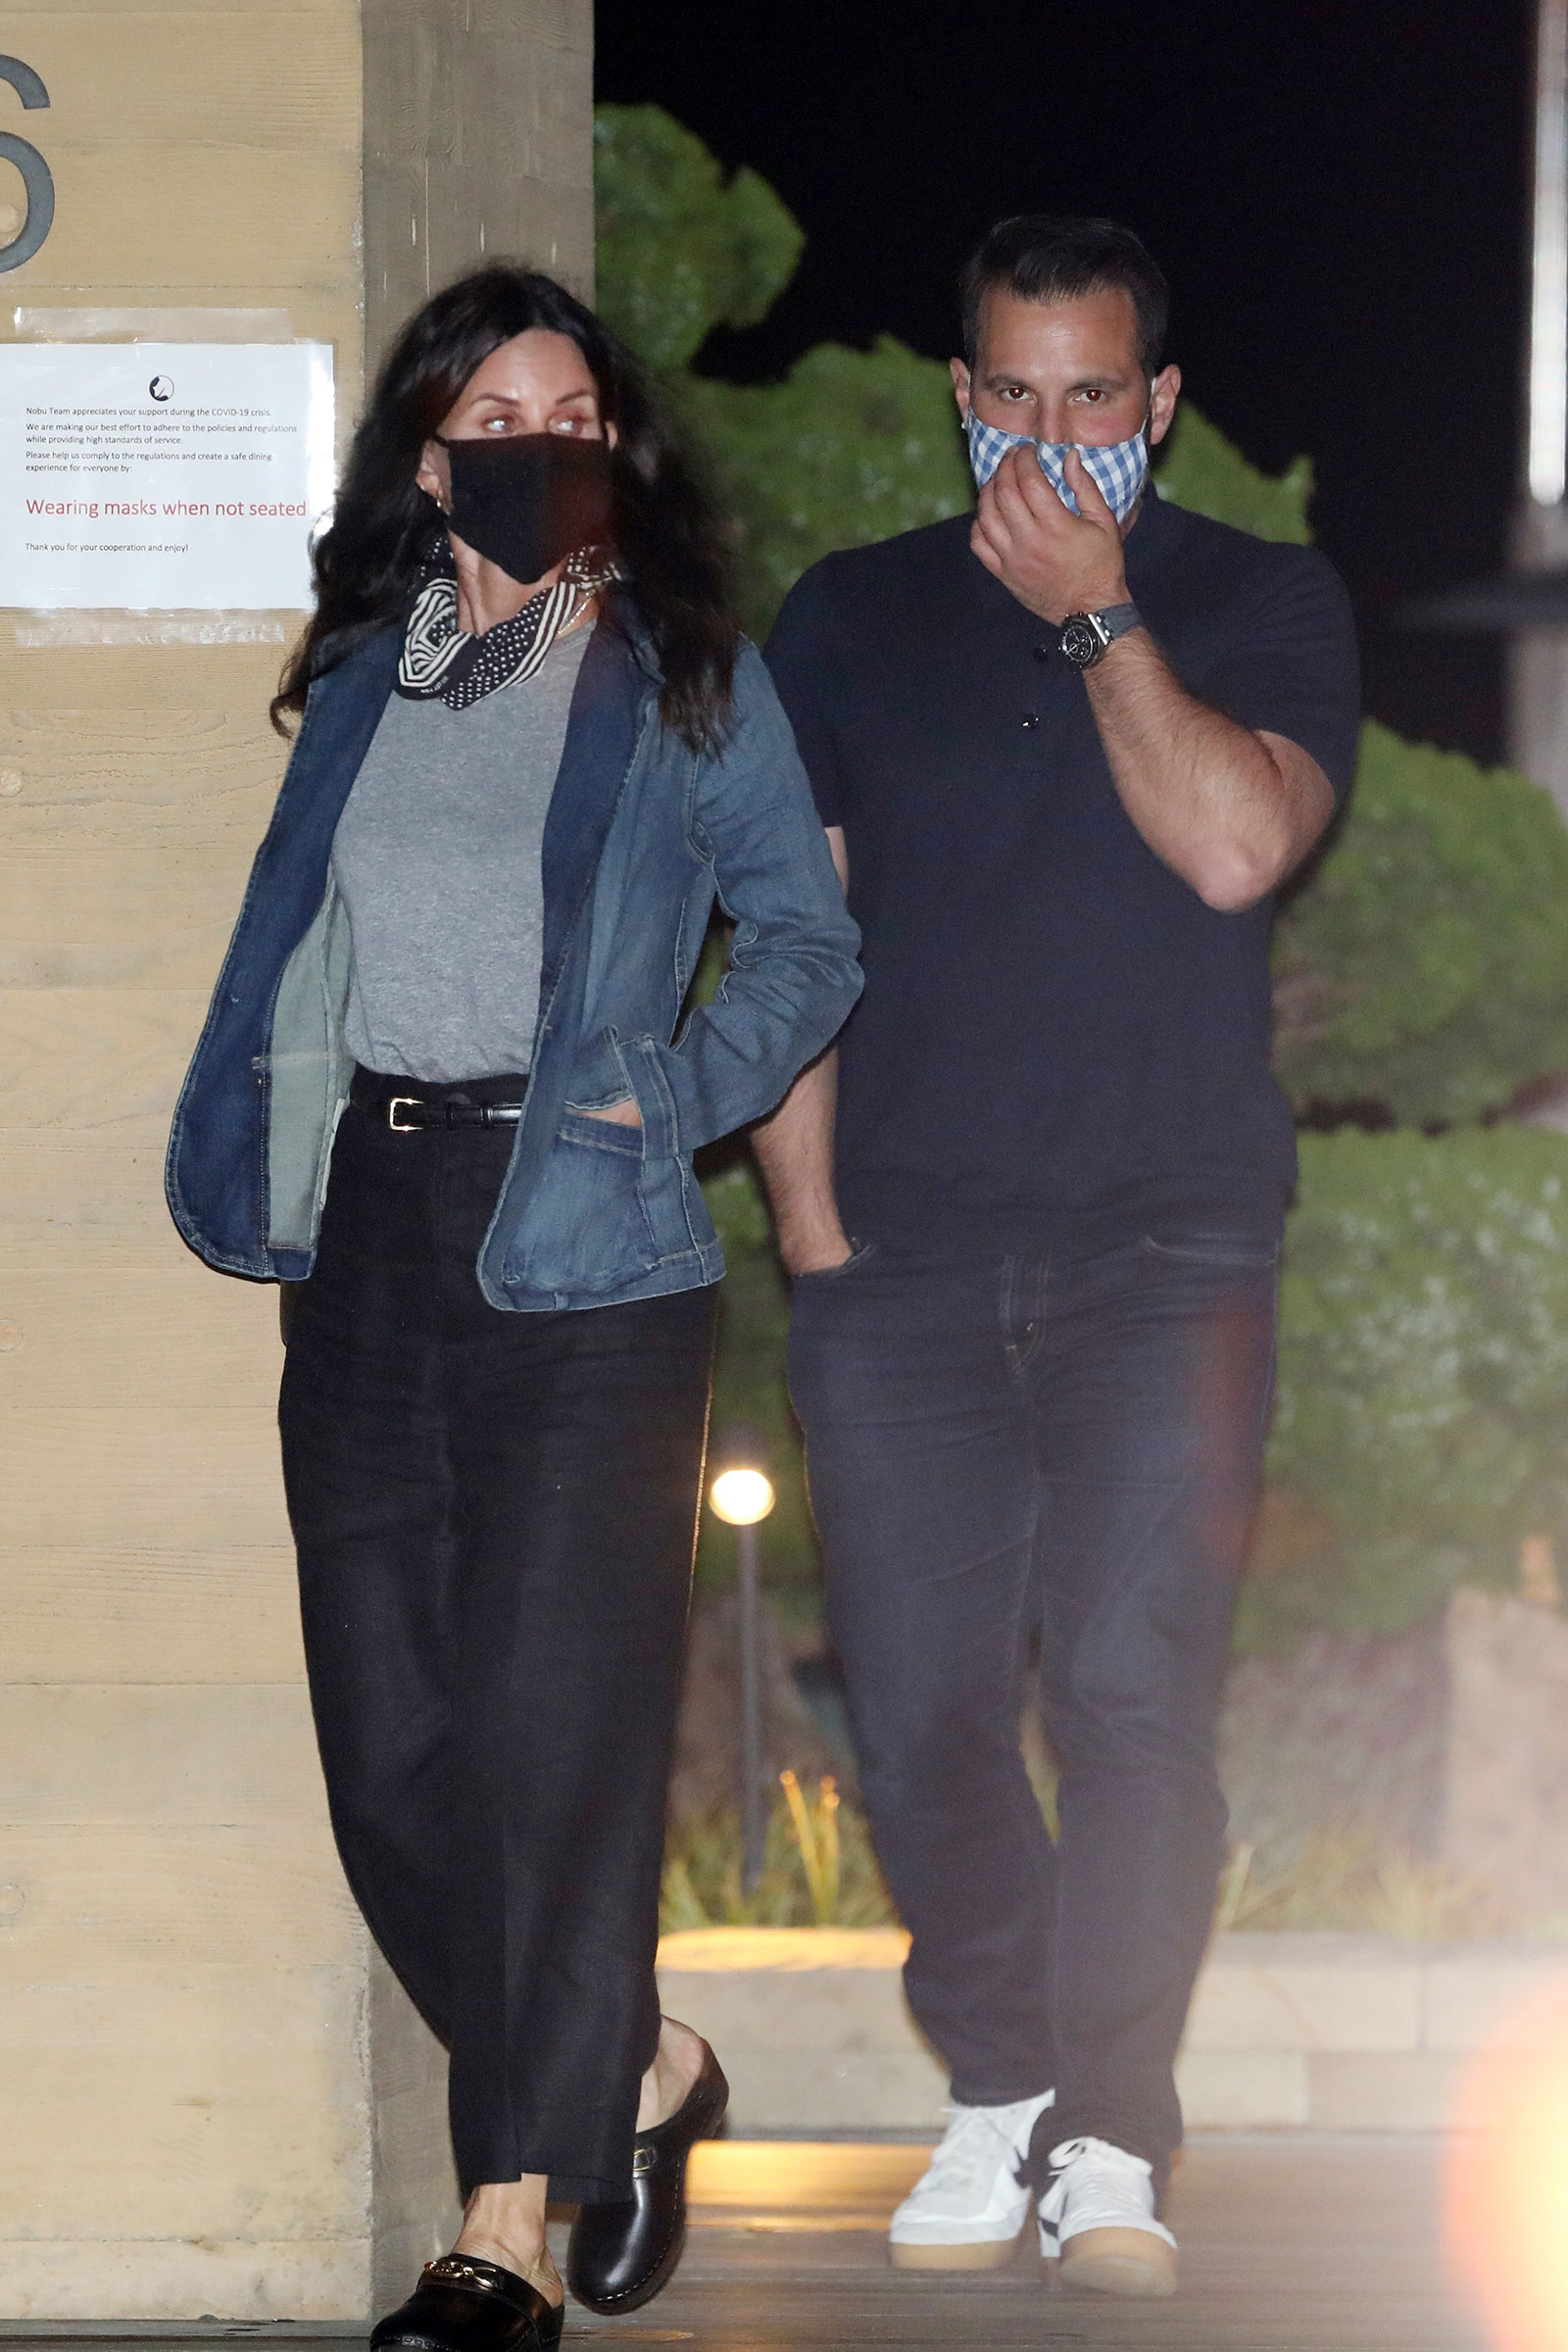 Courteney Cox wears Sydne Summer face mask while out and about